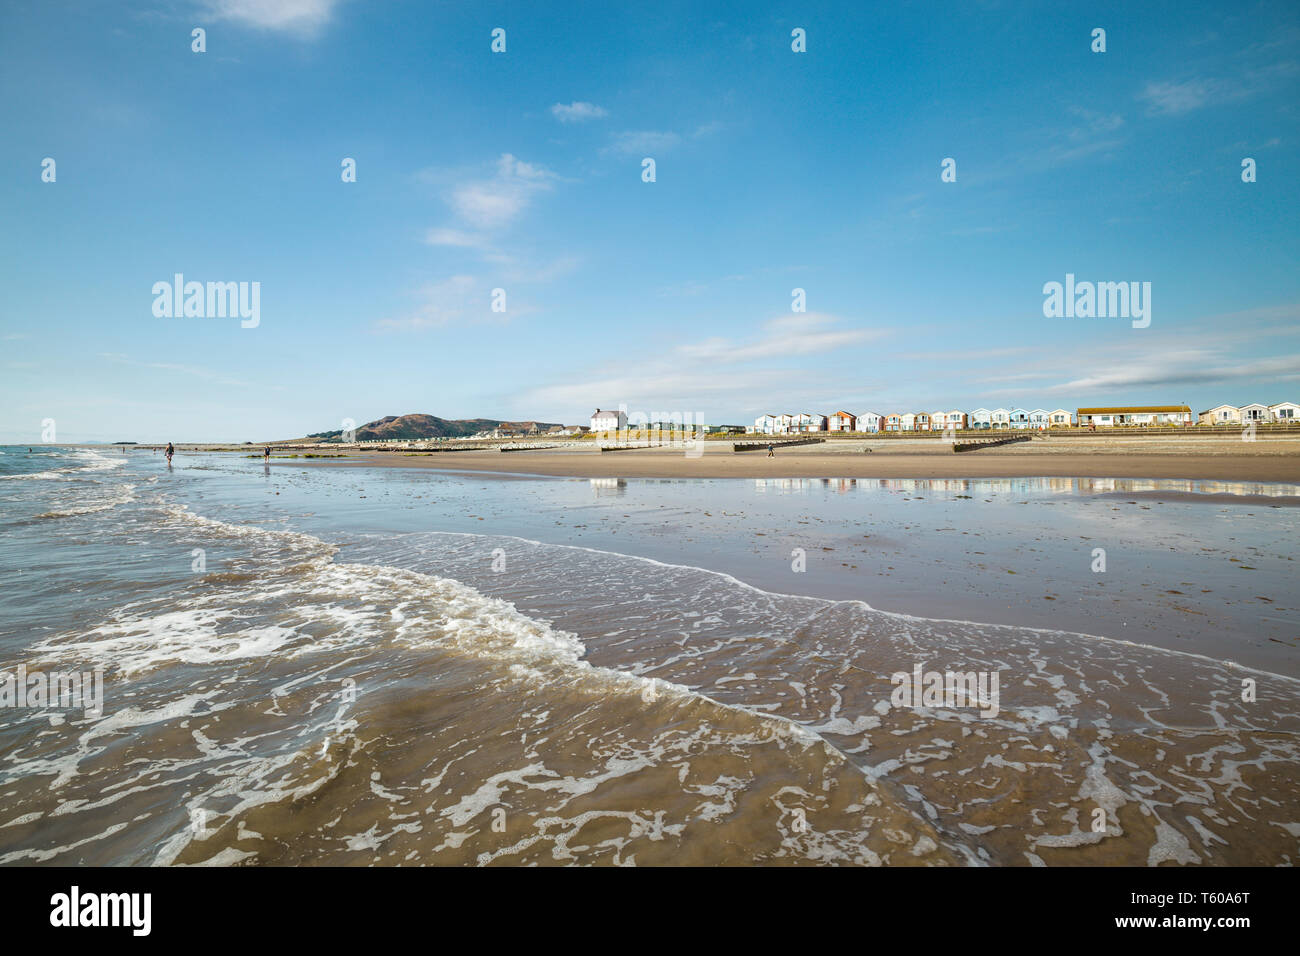 Sea waves washing onto scenic shore of Tywyn in Mid Wales, United Kingdom - Stock Image